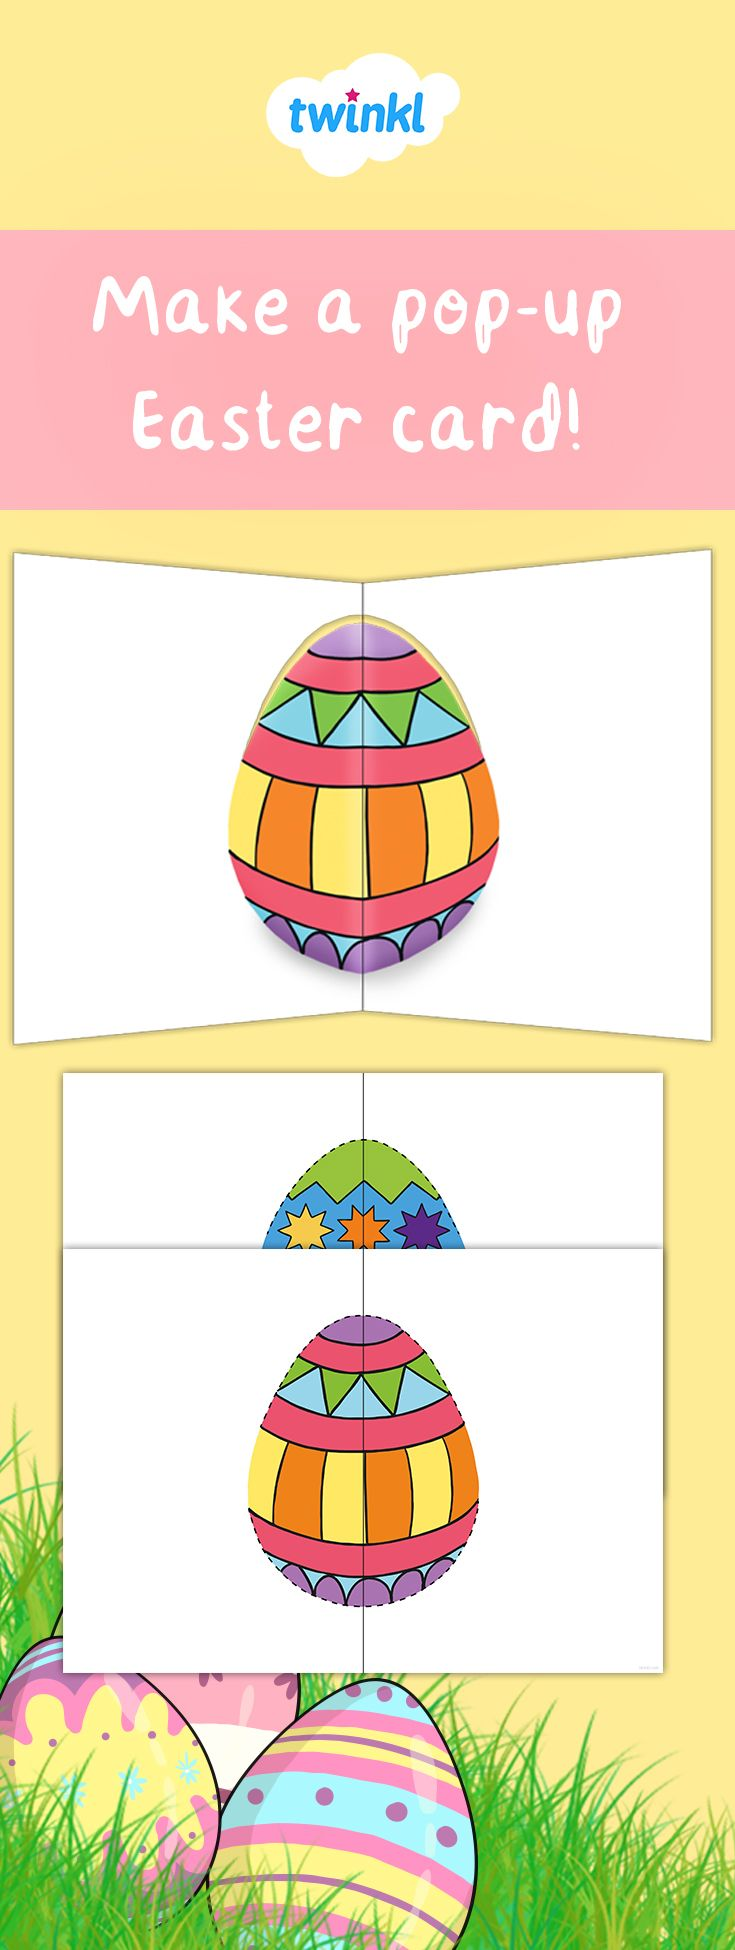 Make a pop-up Easter card with our printable template ...